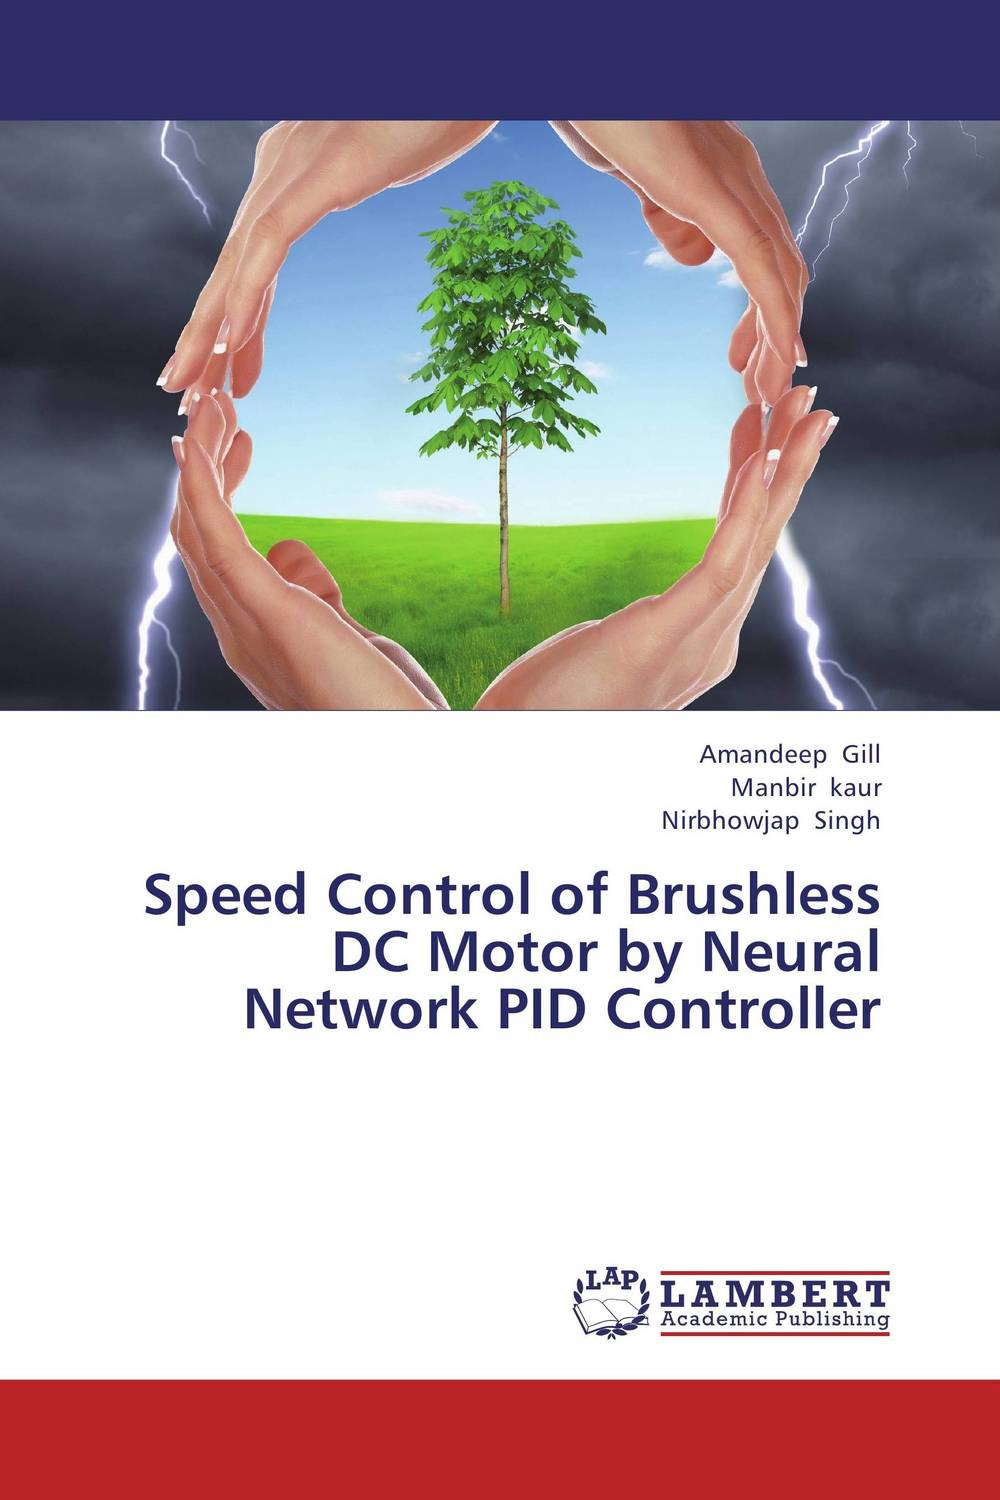 Speed Control of Brushless DC Motor by Neural Network PID Controller